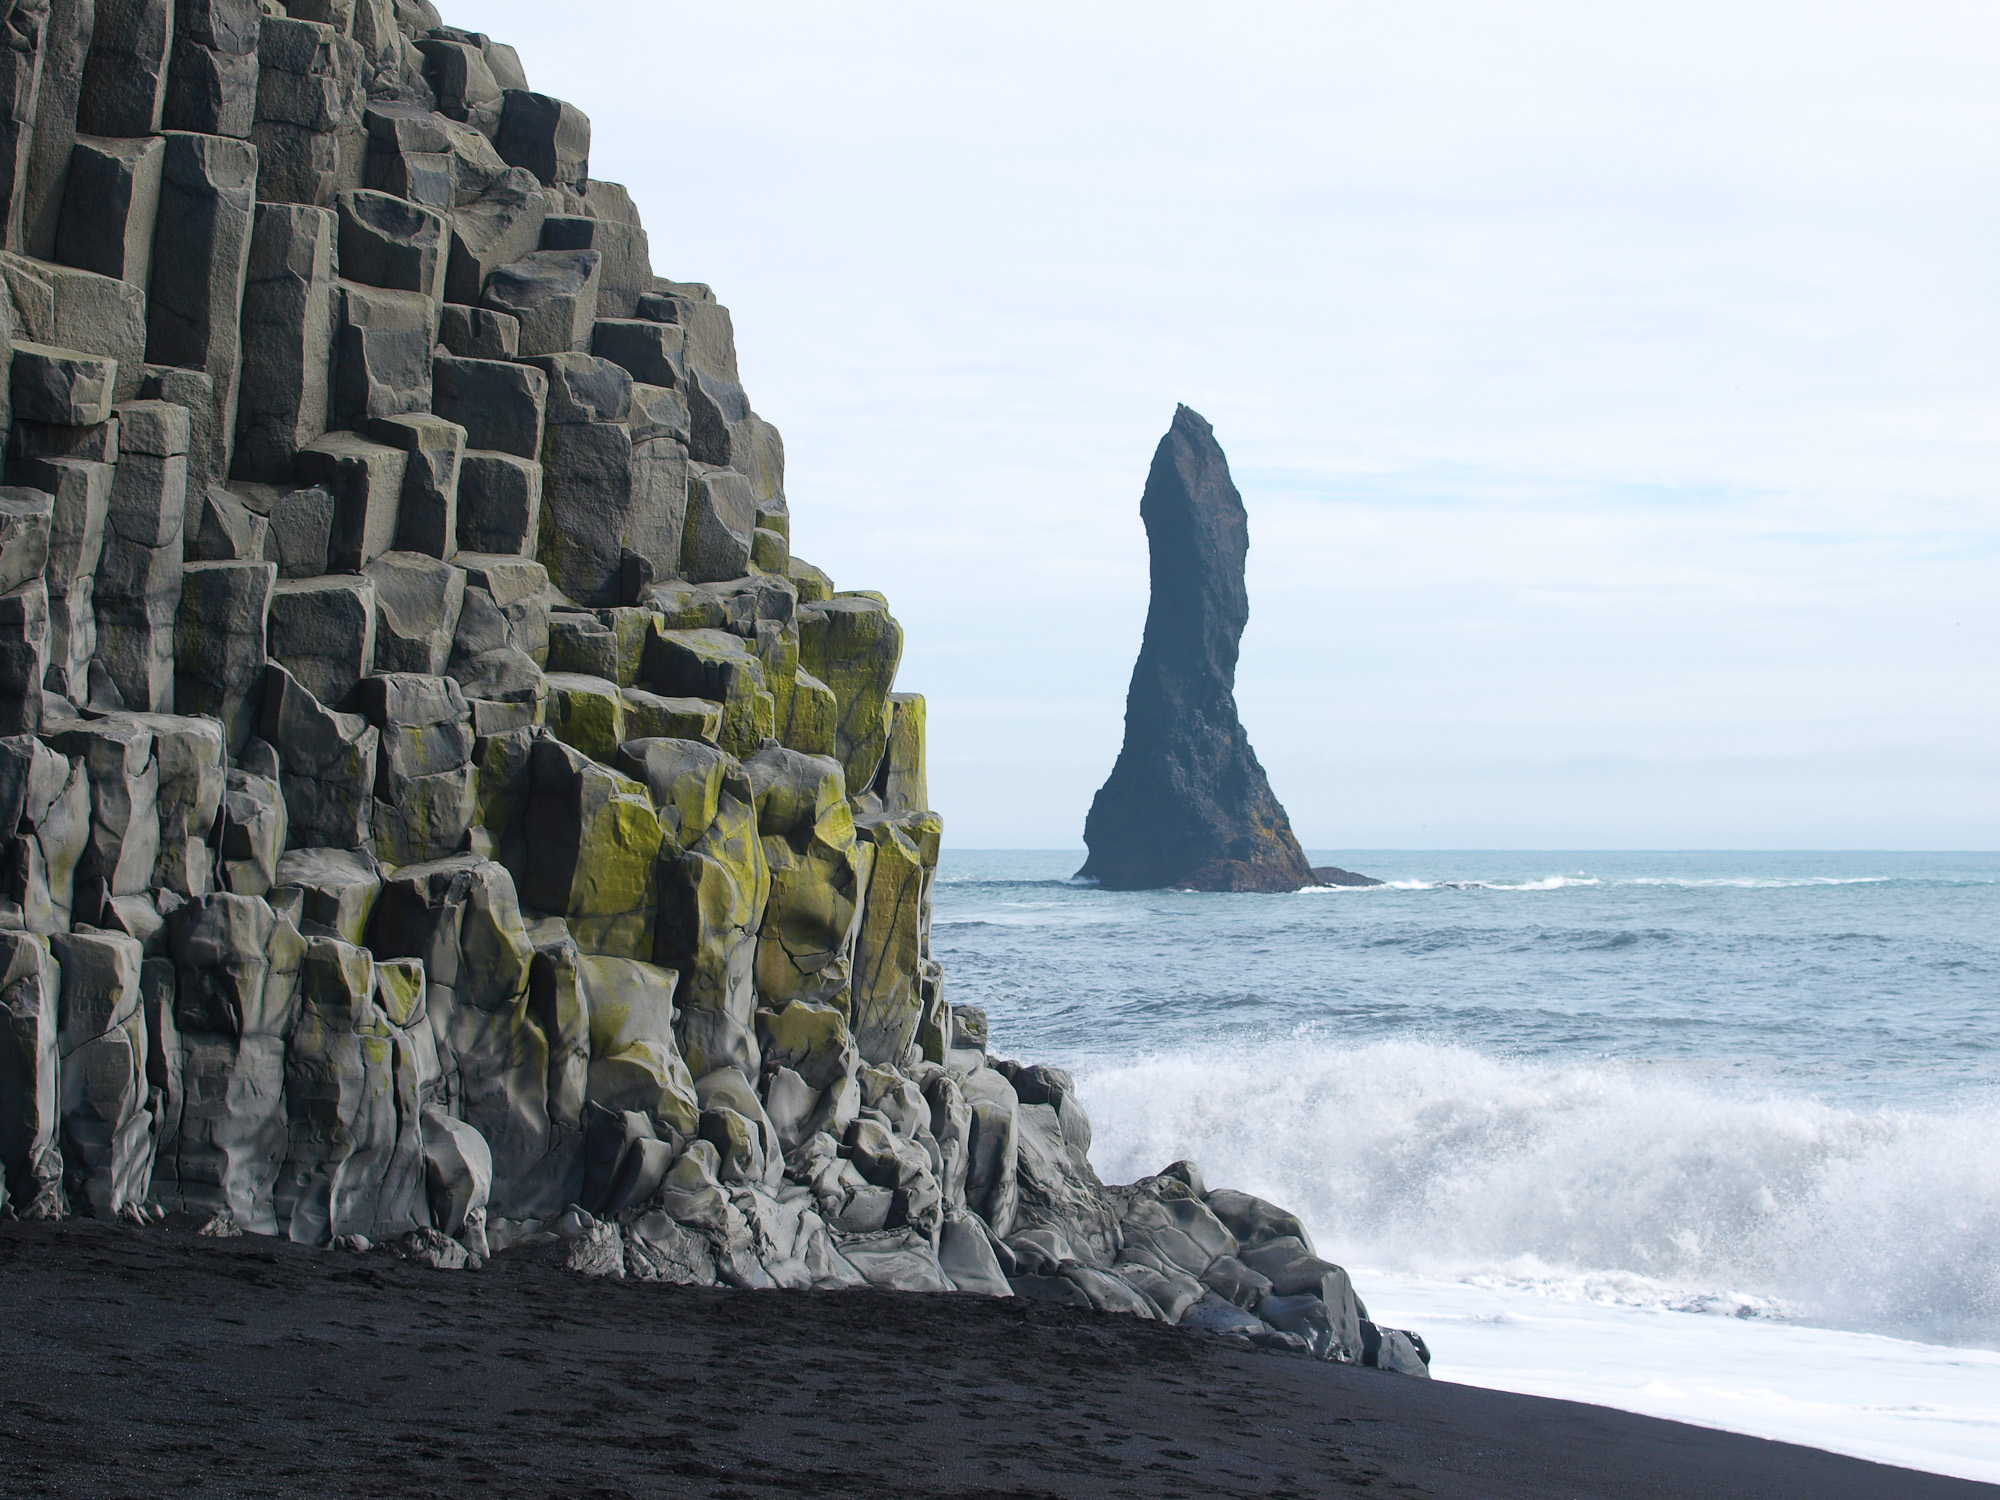 Reynisdrangar, the black basalt sea stacks near Vik, Iceland